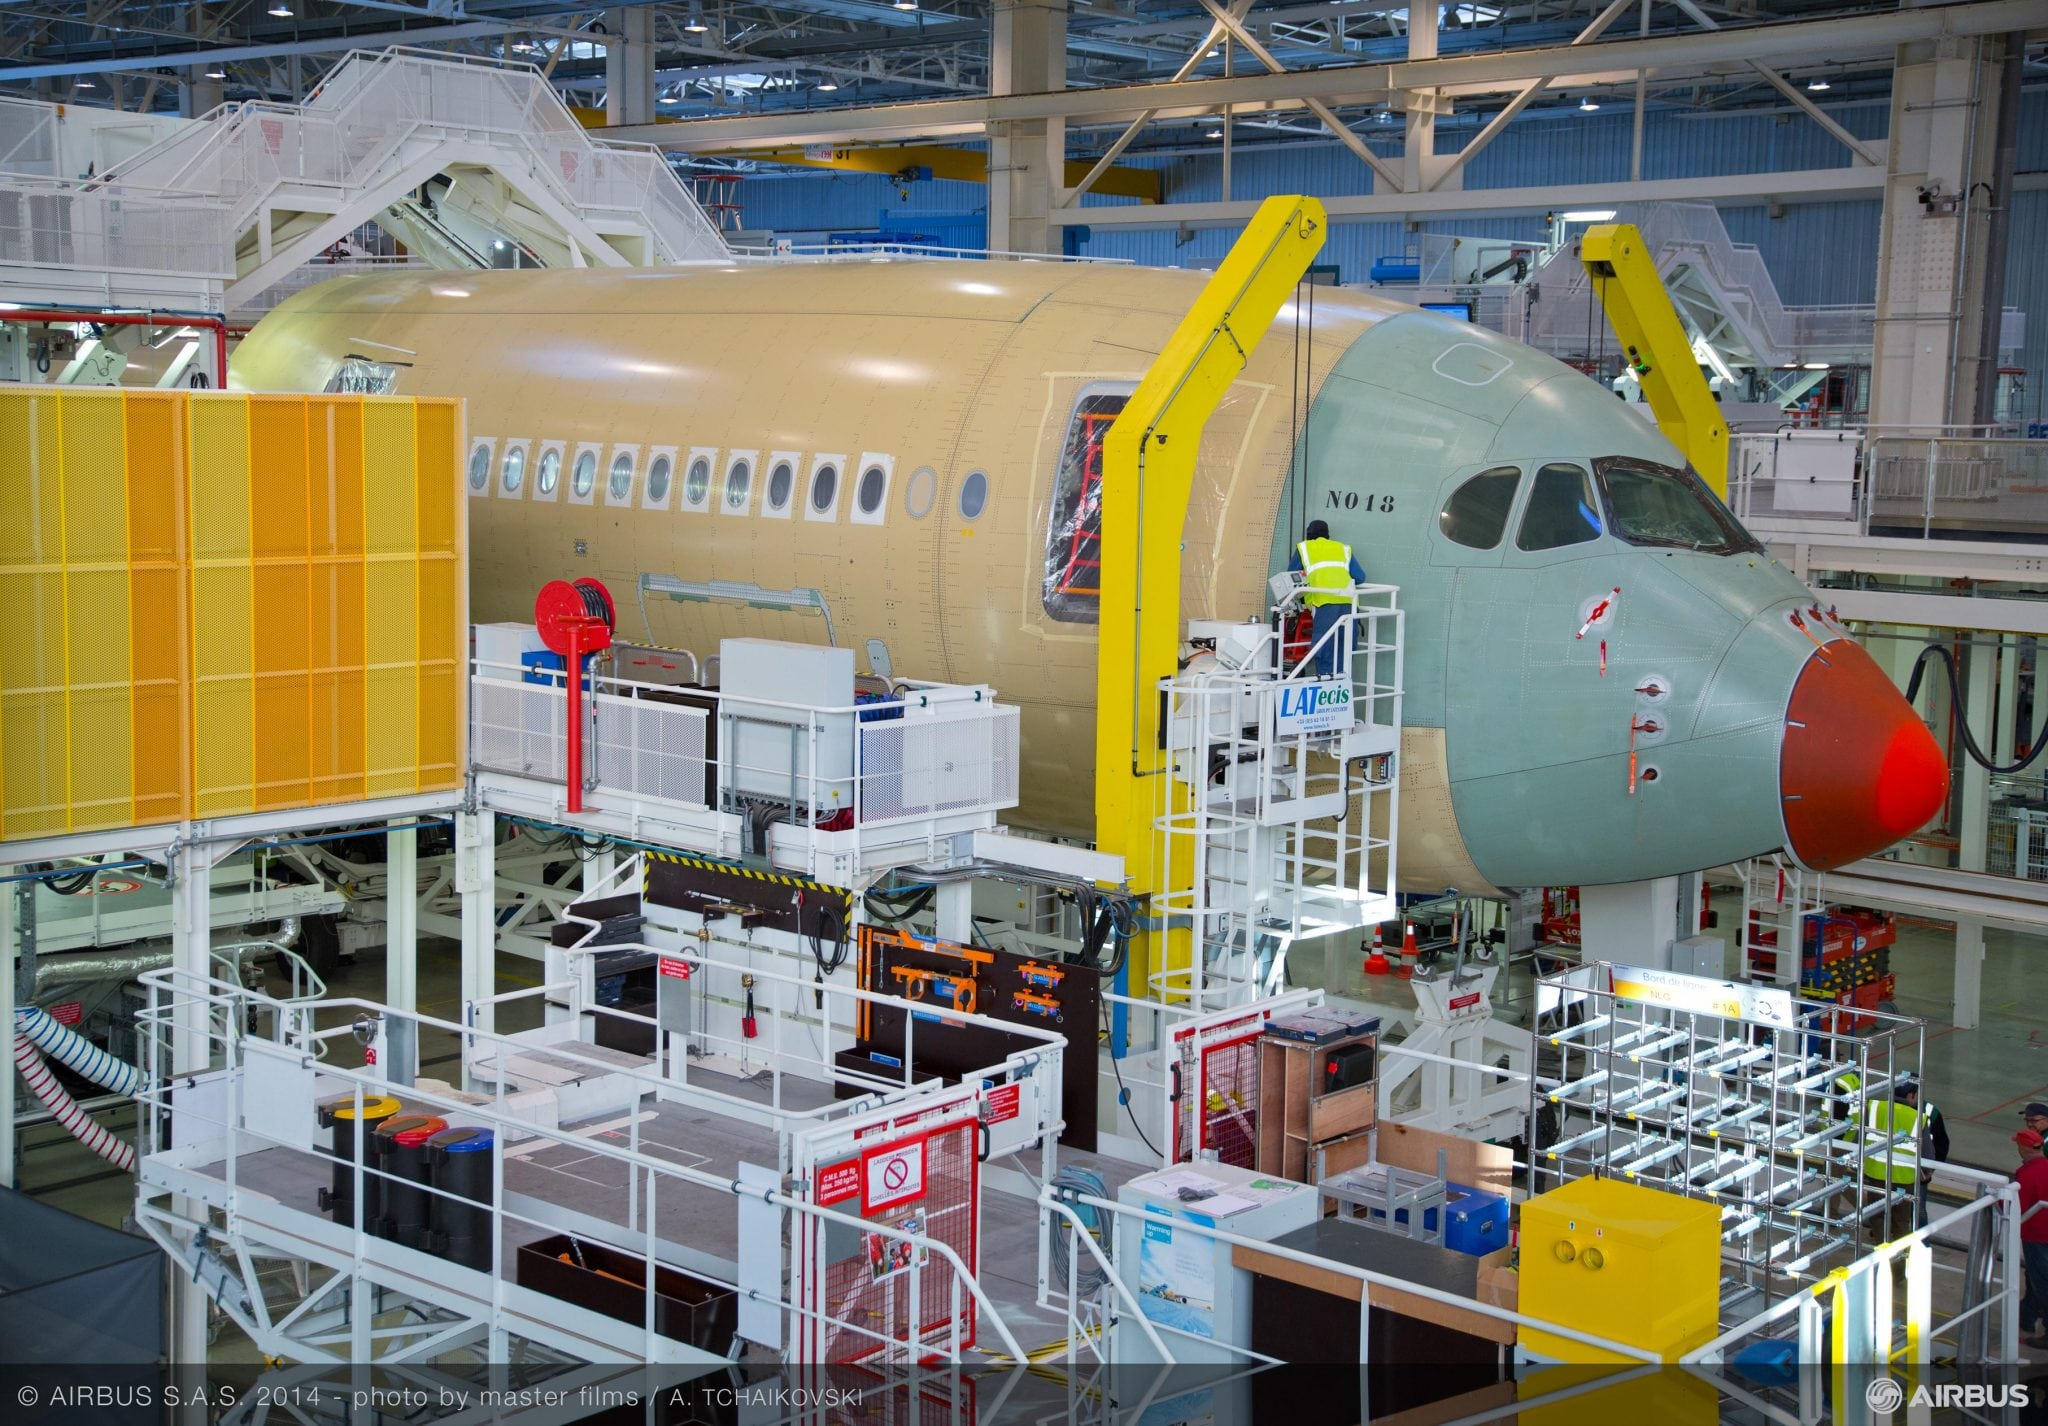 The first A350-900 for Finnair taking shape in the Roger Béteille Final Assembly Line (FAL) in Toulouse, France